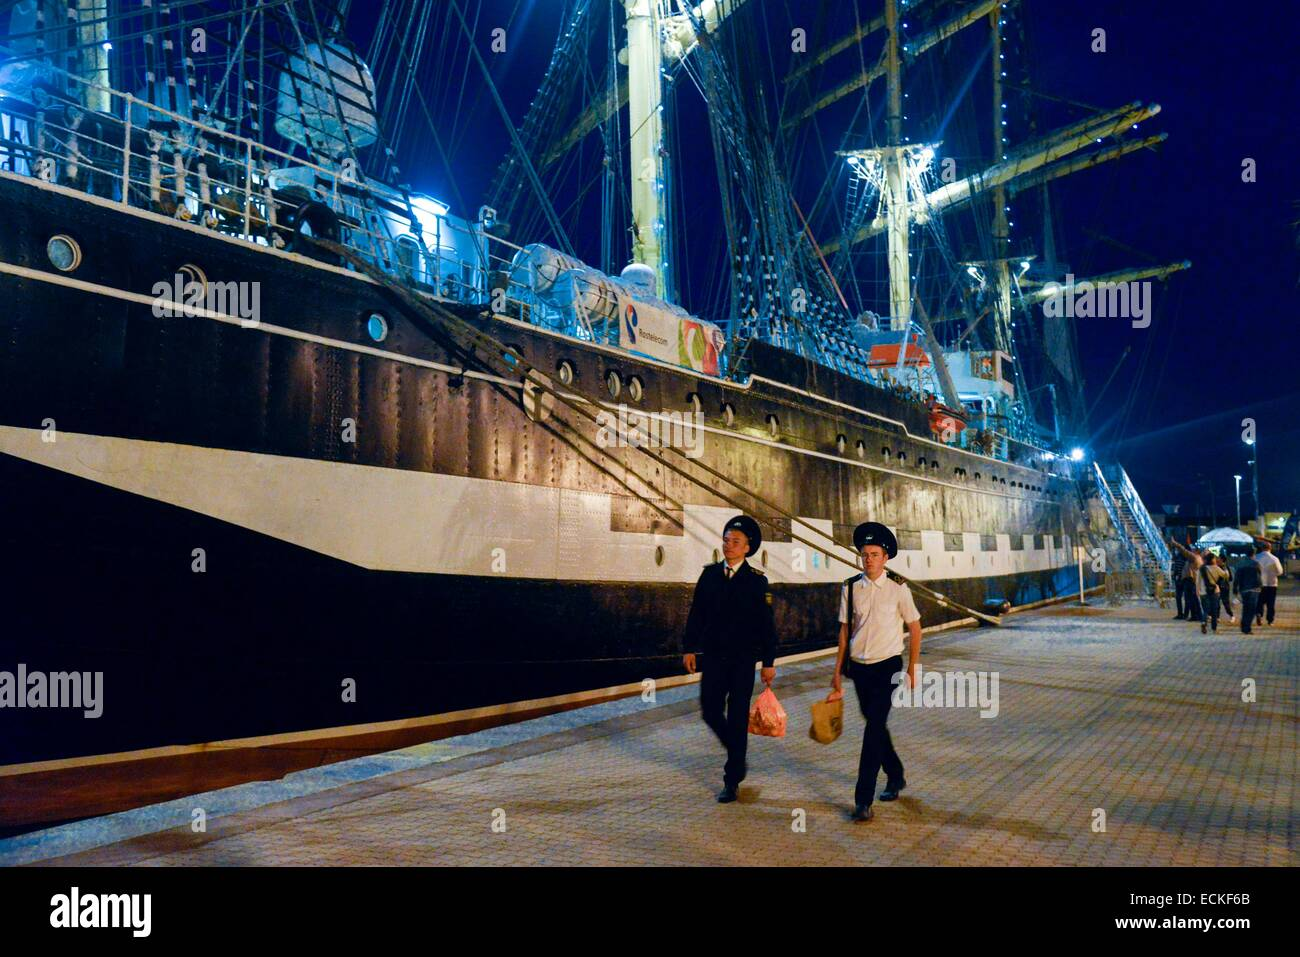 France, Herault, Sete, Escale a Sete Festival, Quay of Algiers, young sailors in front of the sailboat Russian Kruzenstern - Stock Image